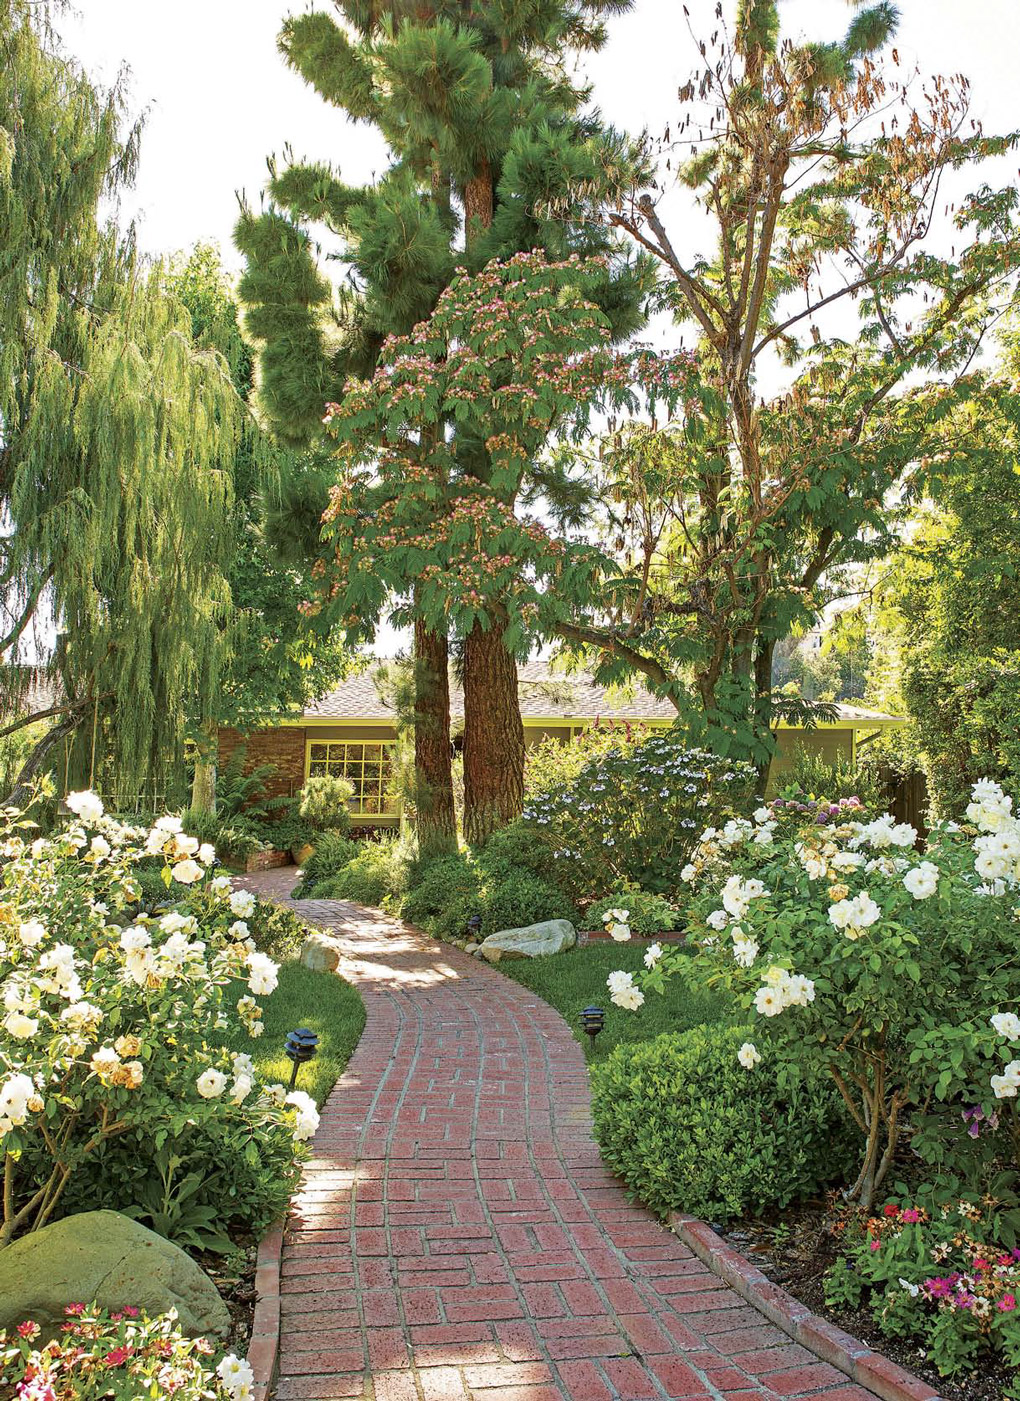 Brick walkway up to a California cottage through lush green garden and mature trees.